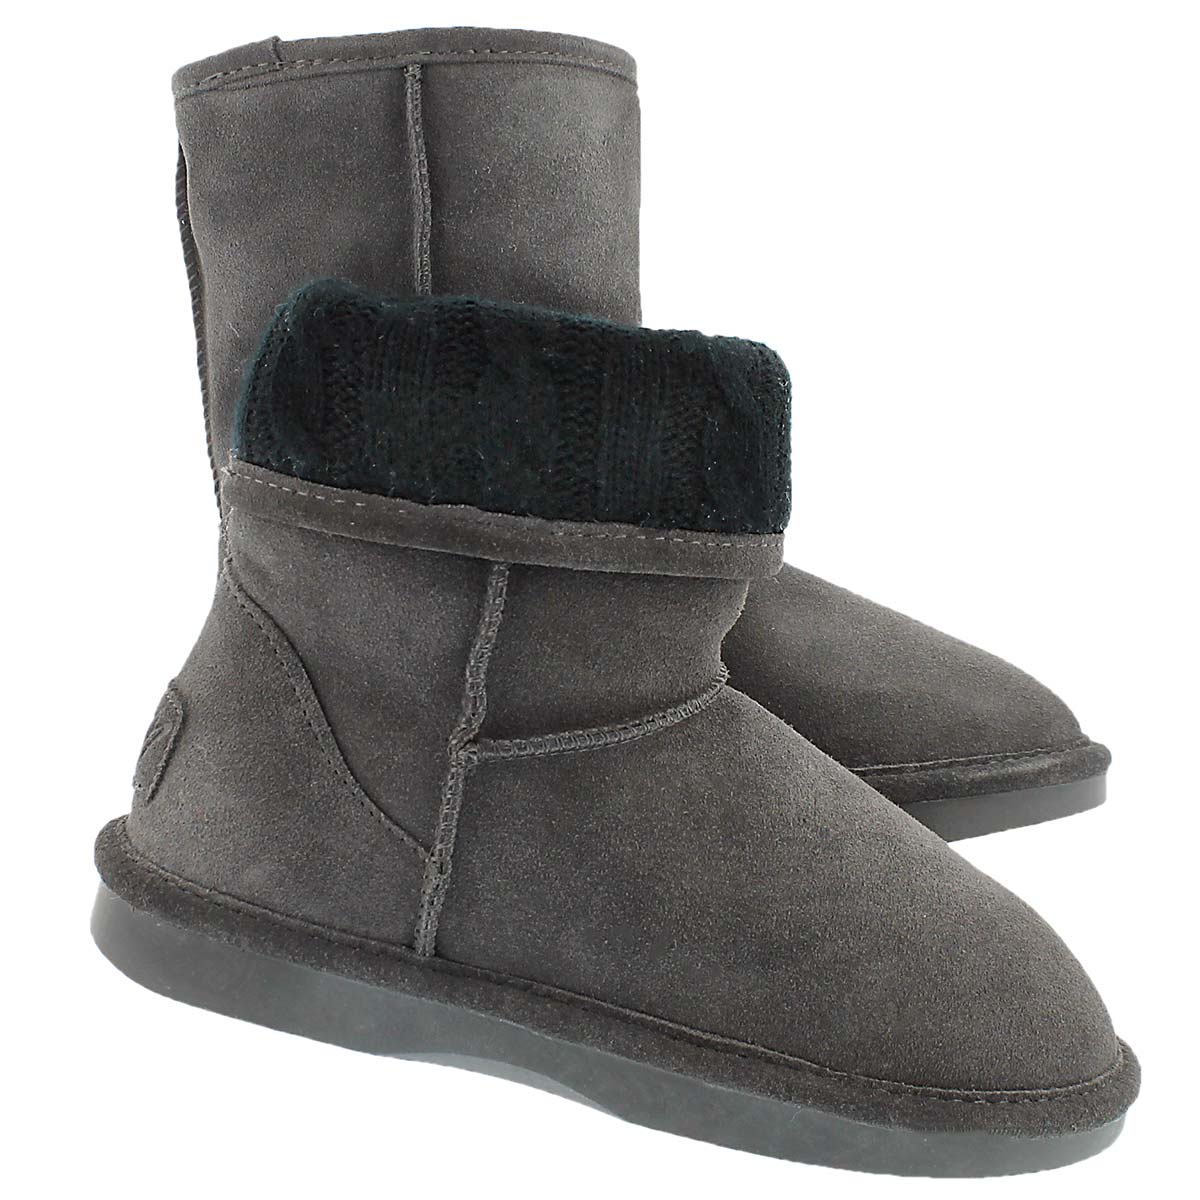 Lds Smocs Cuff grey suede boot